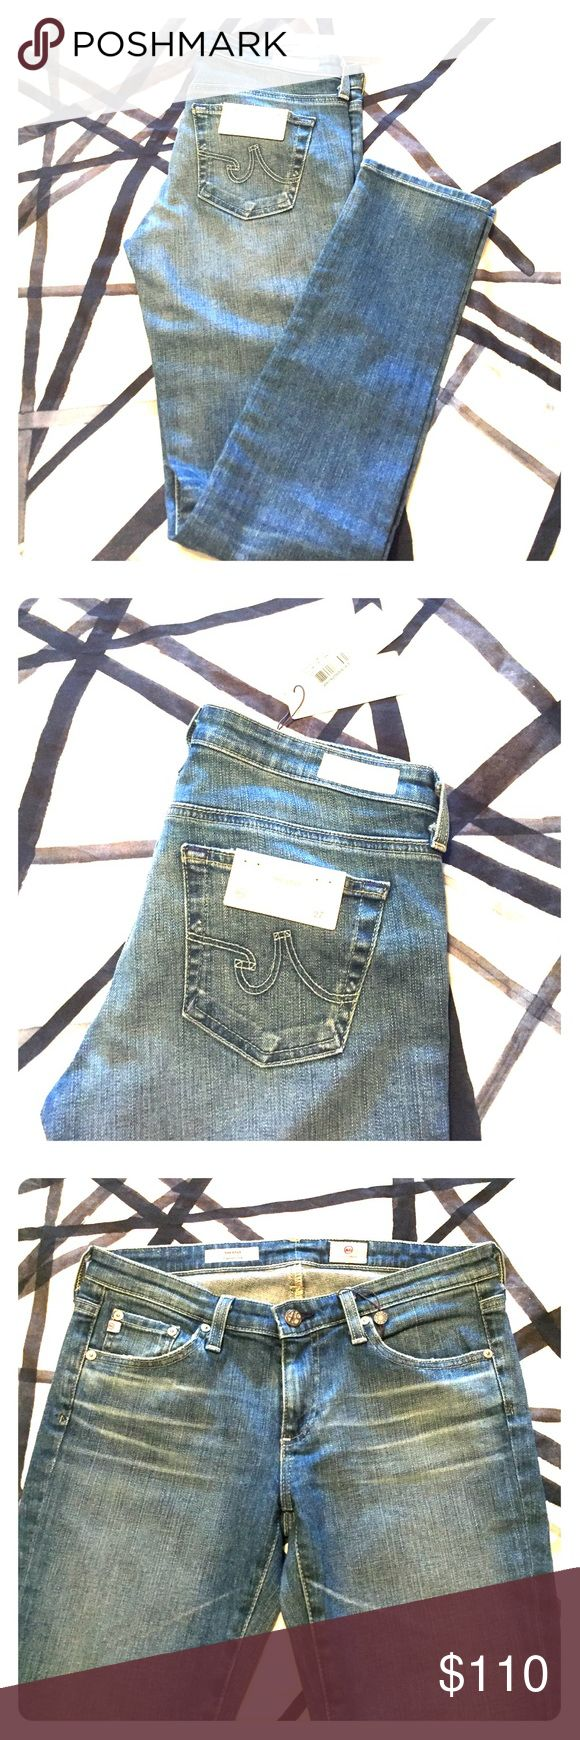 """NWT!!!! AG Denim! The Stilt. Cigarette leg. 30"""" inseam. Never worn or washed, all tags on! 14 years sand wash. Price is firm AG Jeans Skinny"""